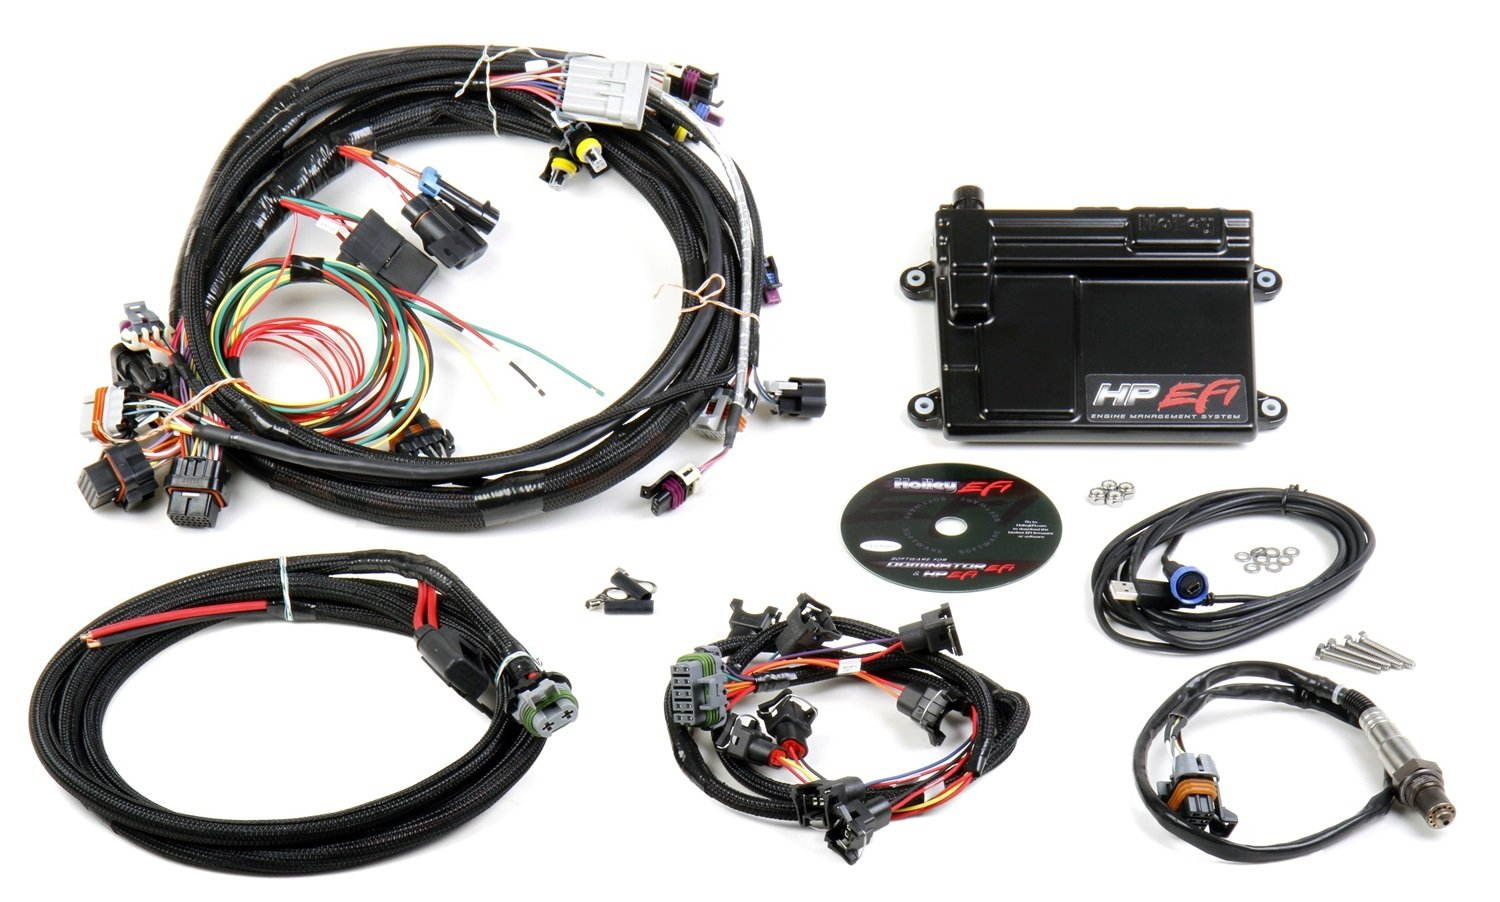 71yuQ%2BumfWL._SL1500_ amazon com holley 550 602 hp efi, ecu and harness kit automotive subaru ecu and wiring harness at honlapkeszites.co